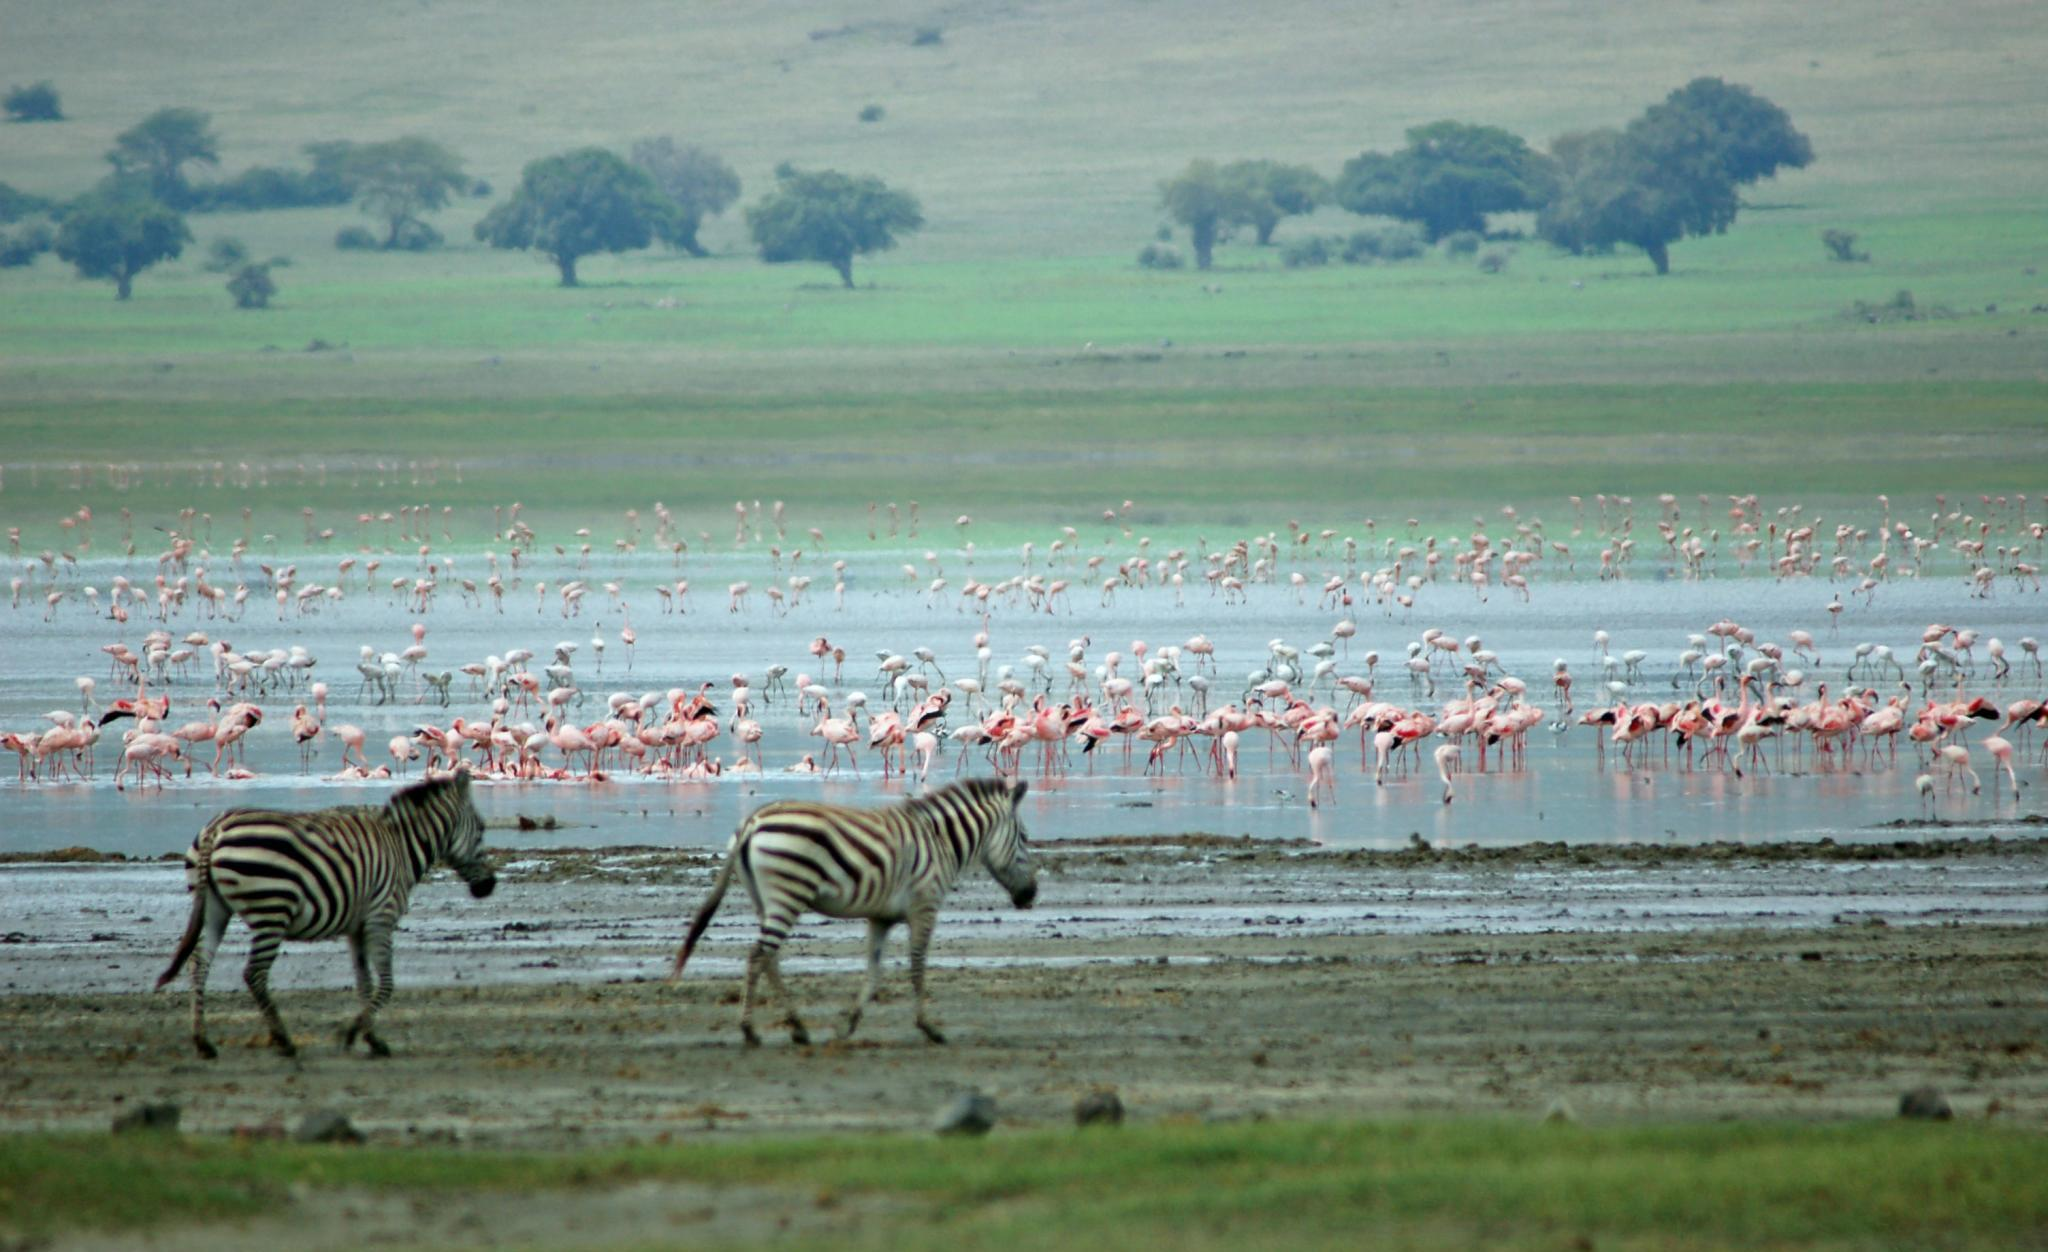 Zebras and Flamingos, lake manyara